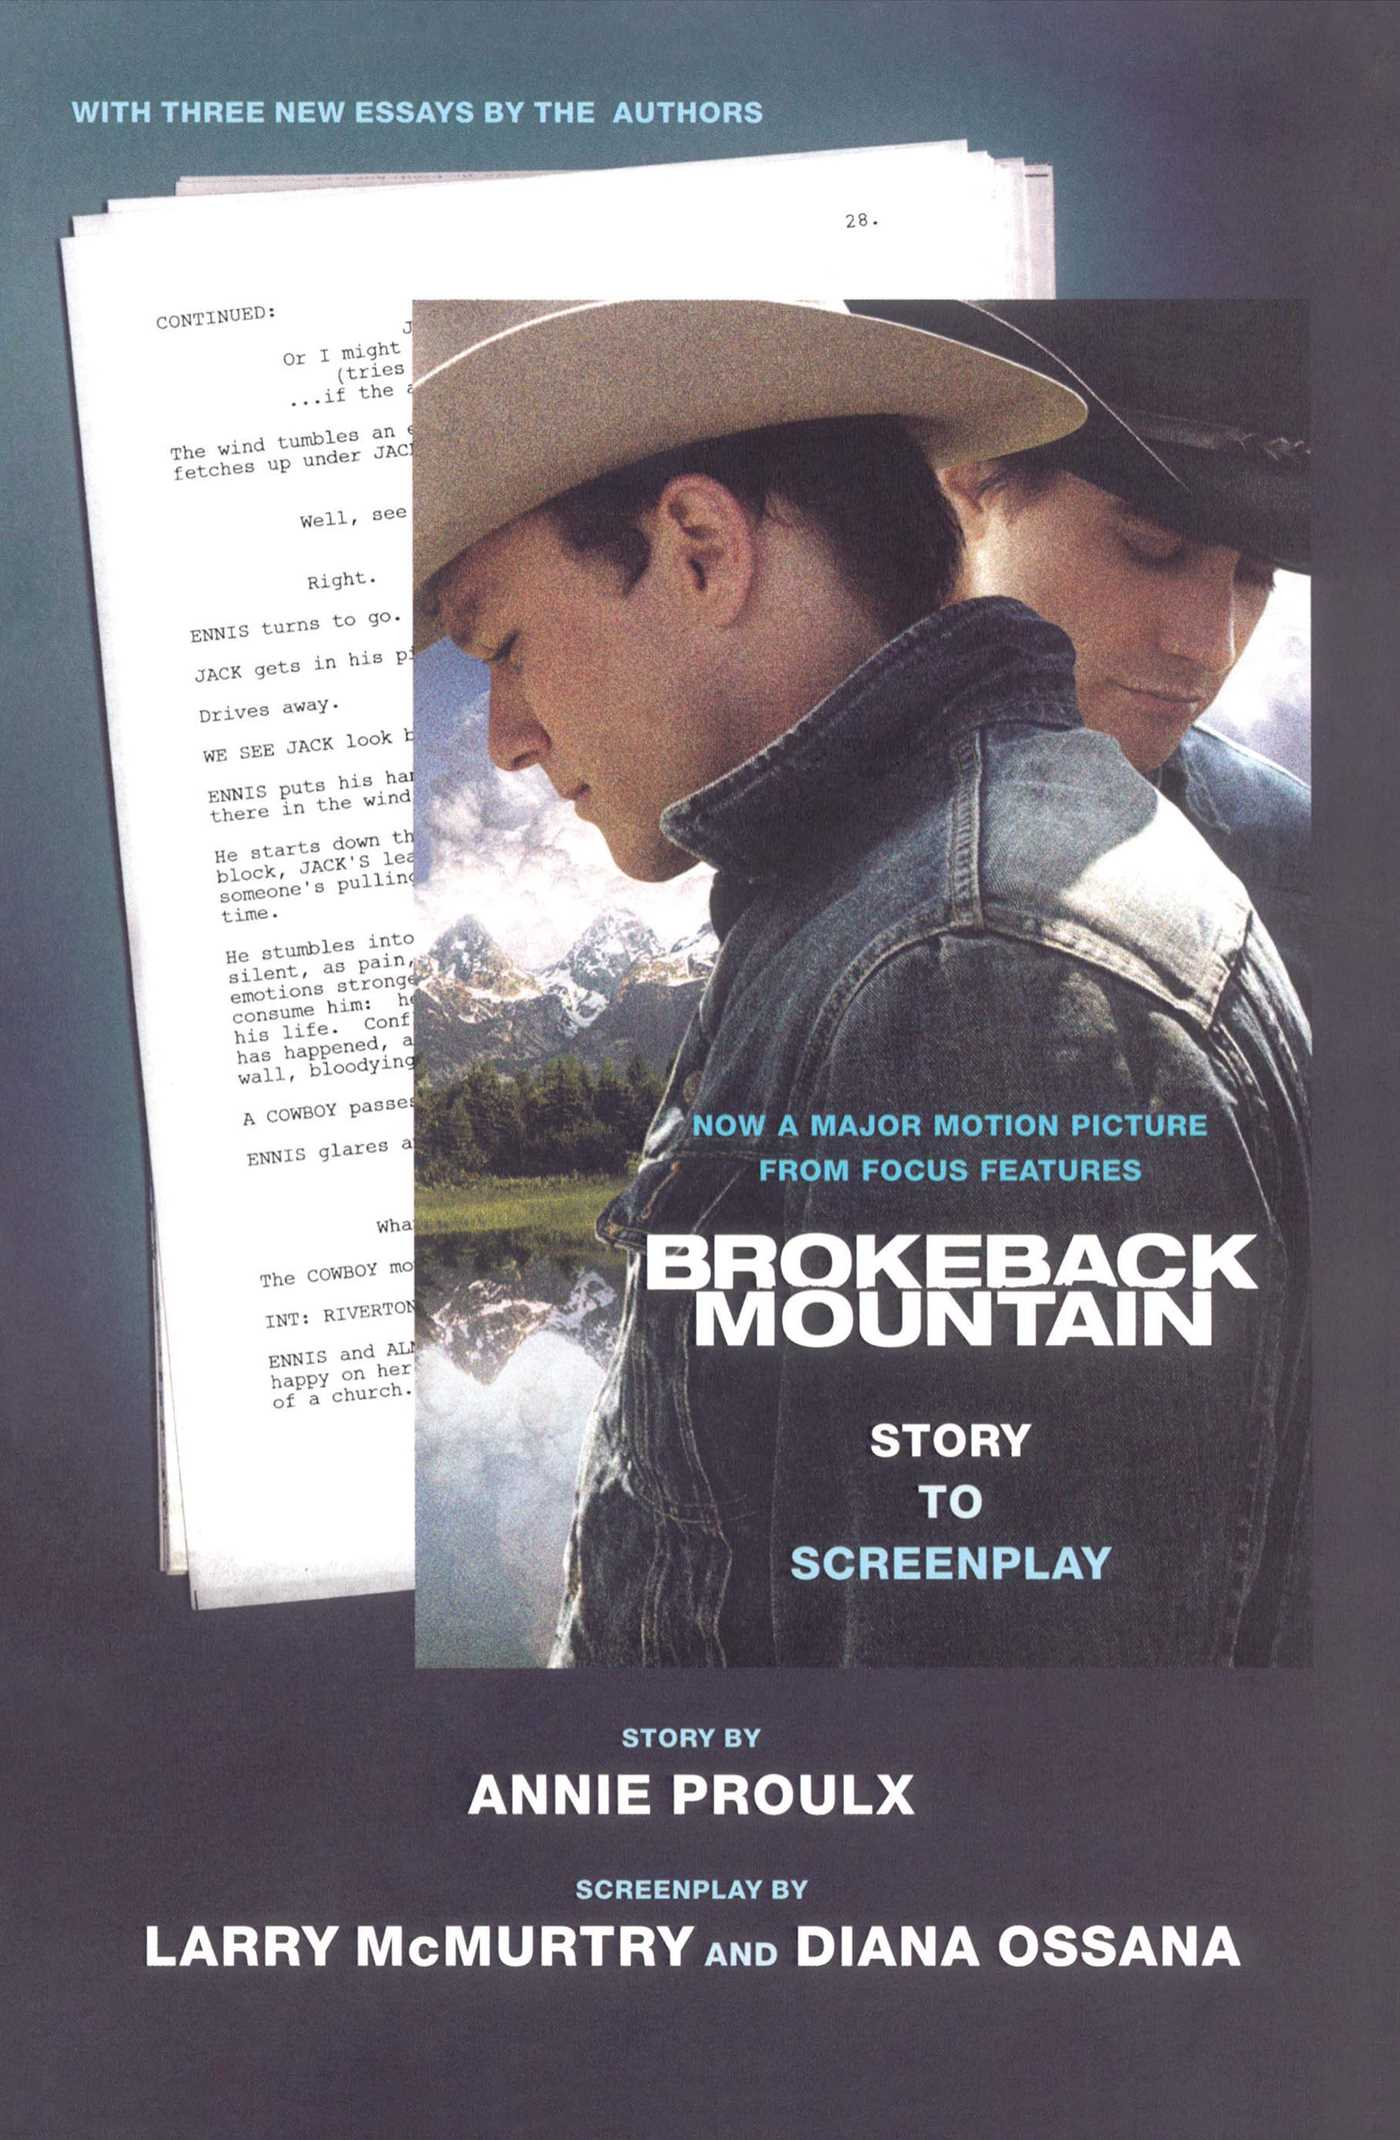 Brokeback mountain story to screenplay 9781439188576 hr